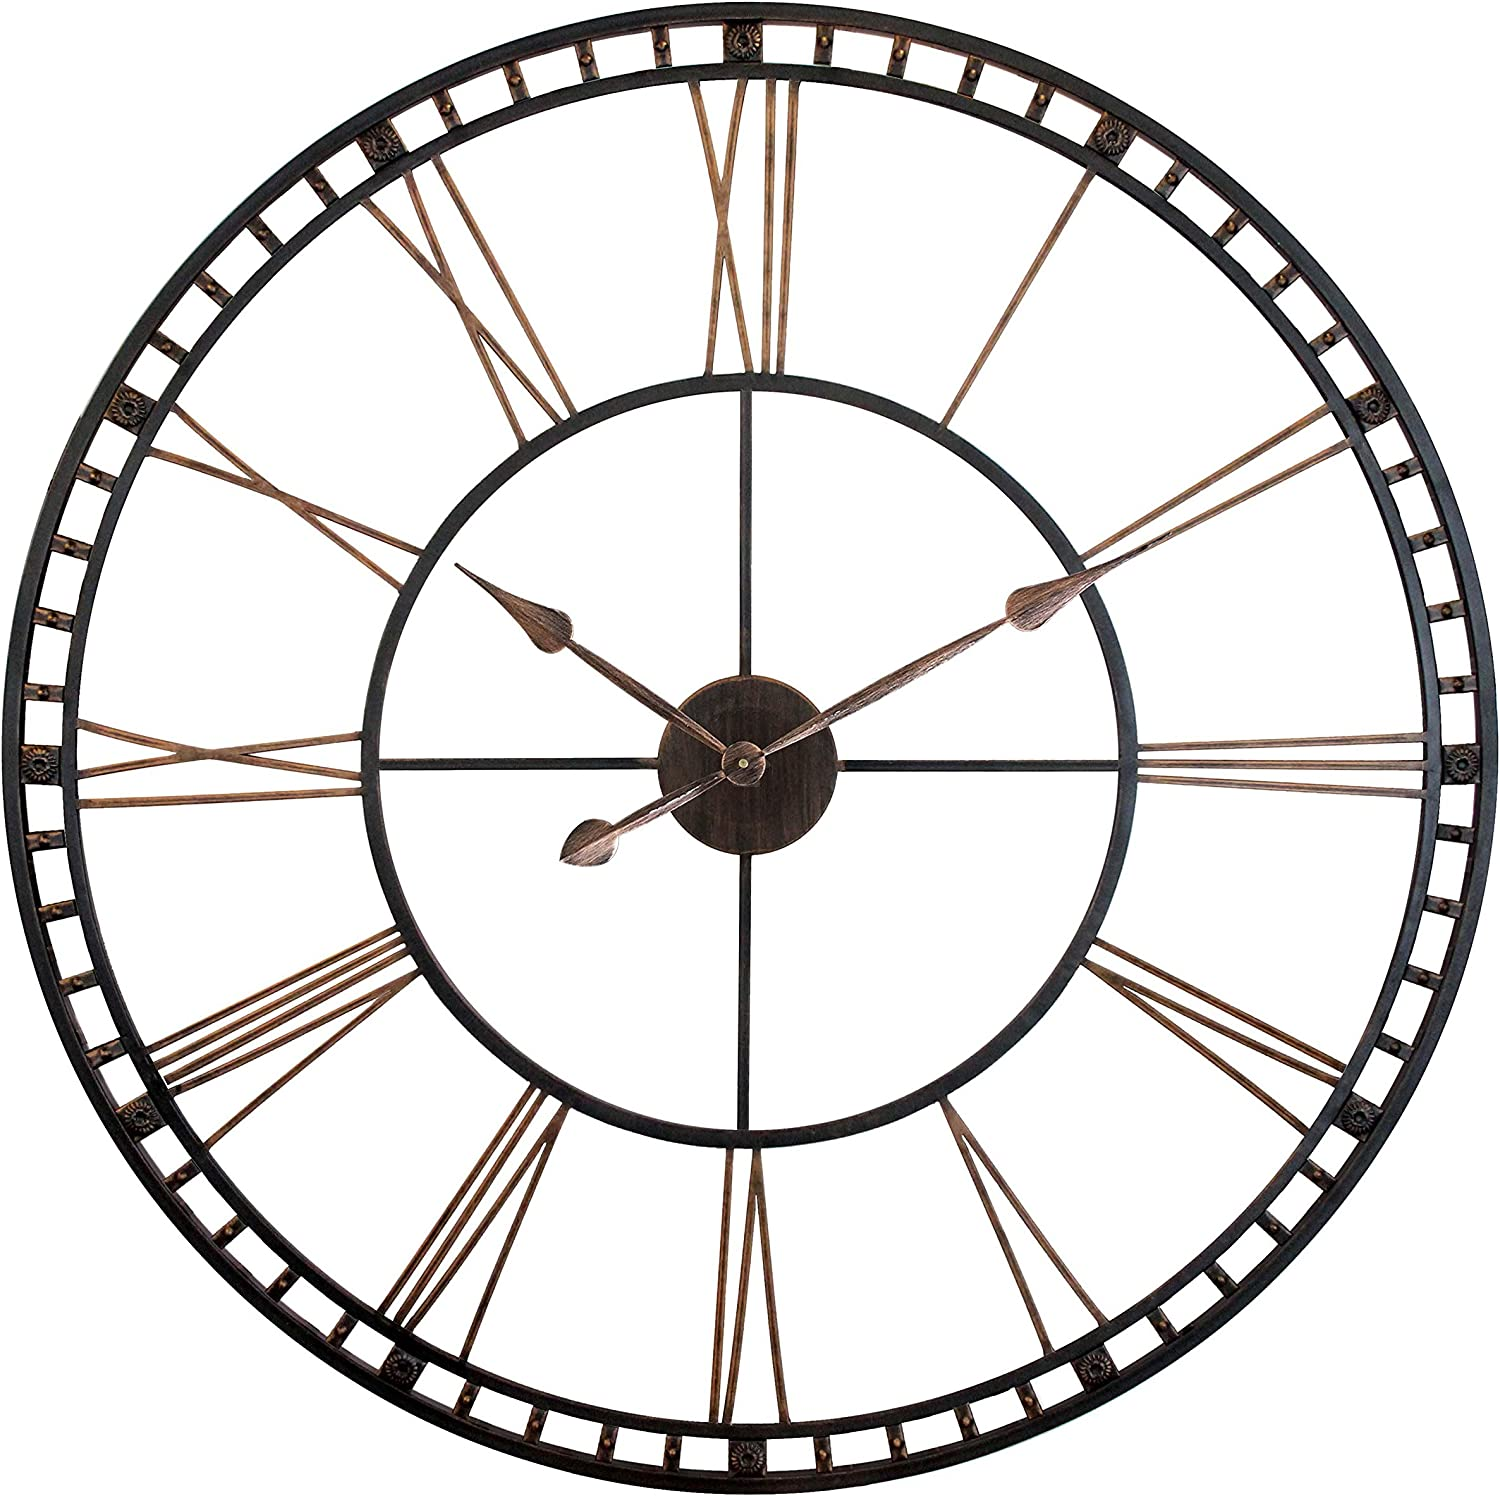 Amazon Com Infinity Instruments Tower Xxl Oversized Decorative Wall Clock Perfect For Any Indoor Living Space 39 H X 39 W X 2 5 D Black Bronze Home Kitchen